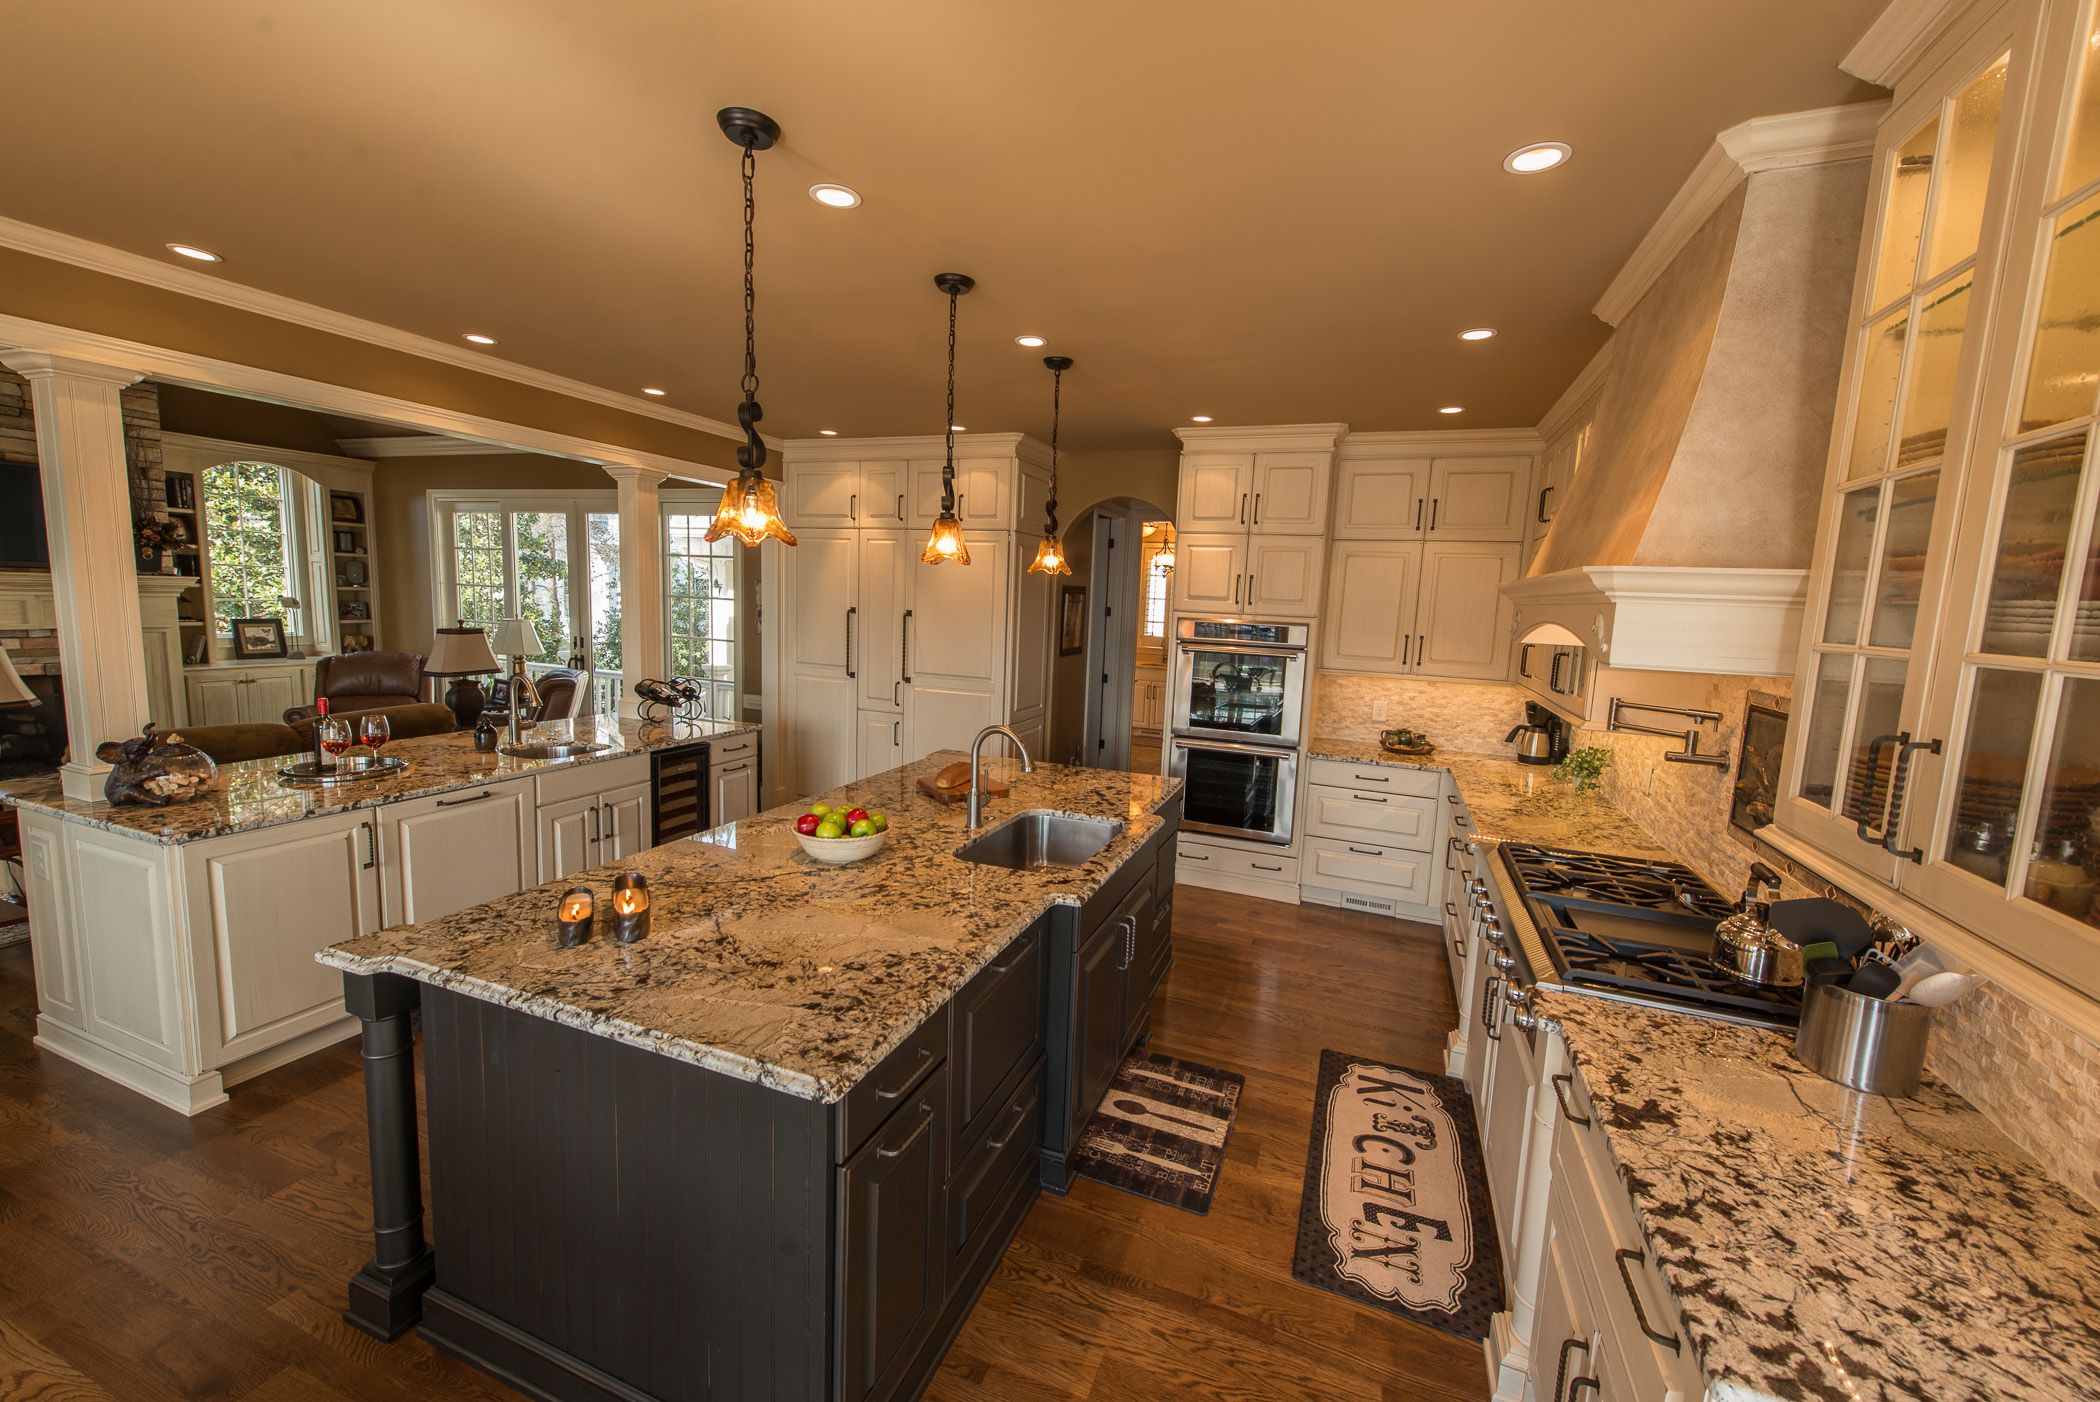 Designing a kitchen island in alpharetta roswell milton - Kitchen island with cooktop and prep sink ...